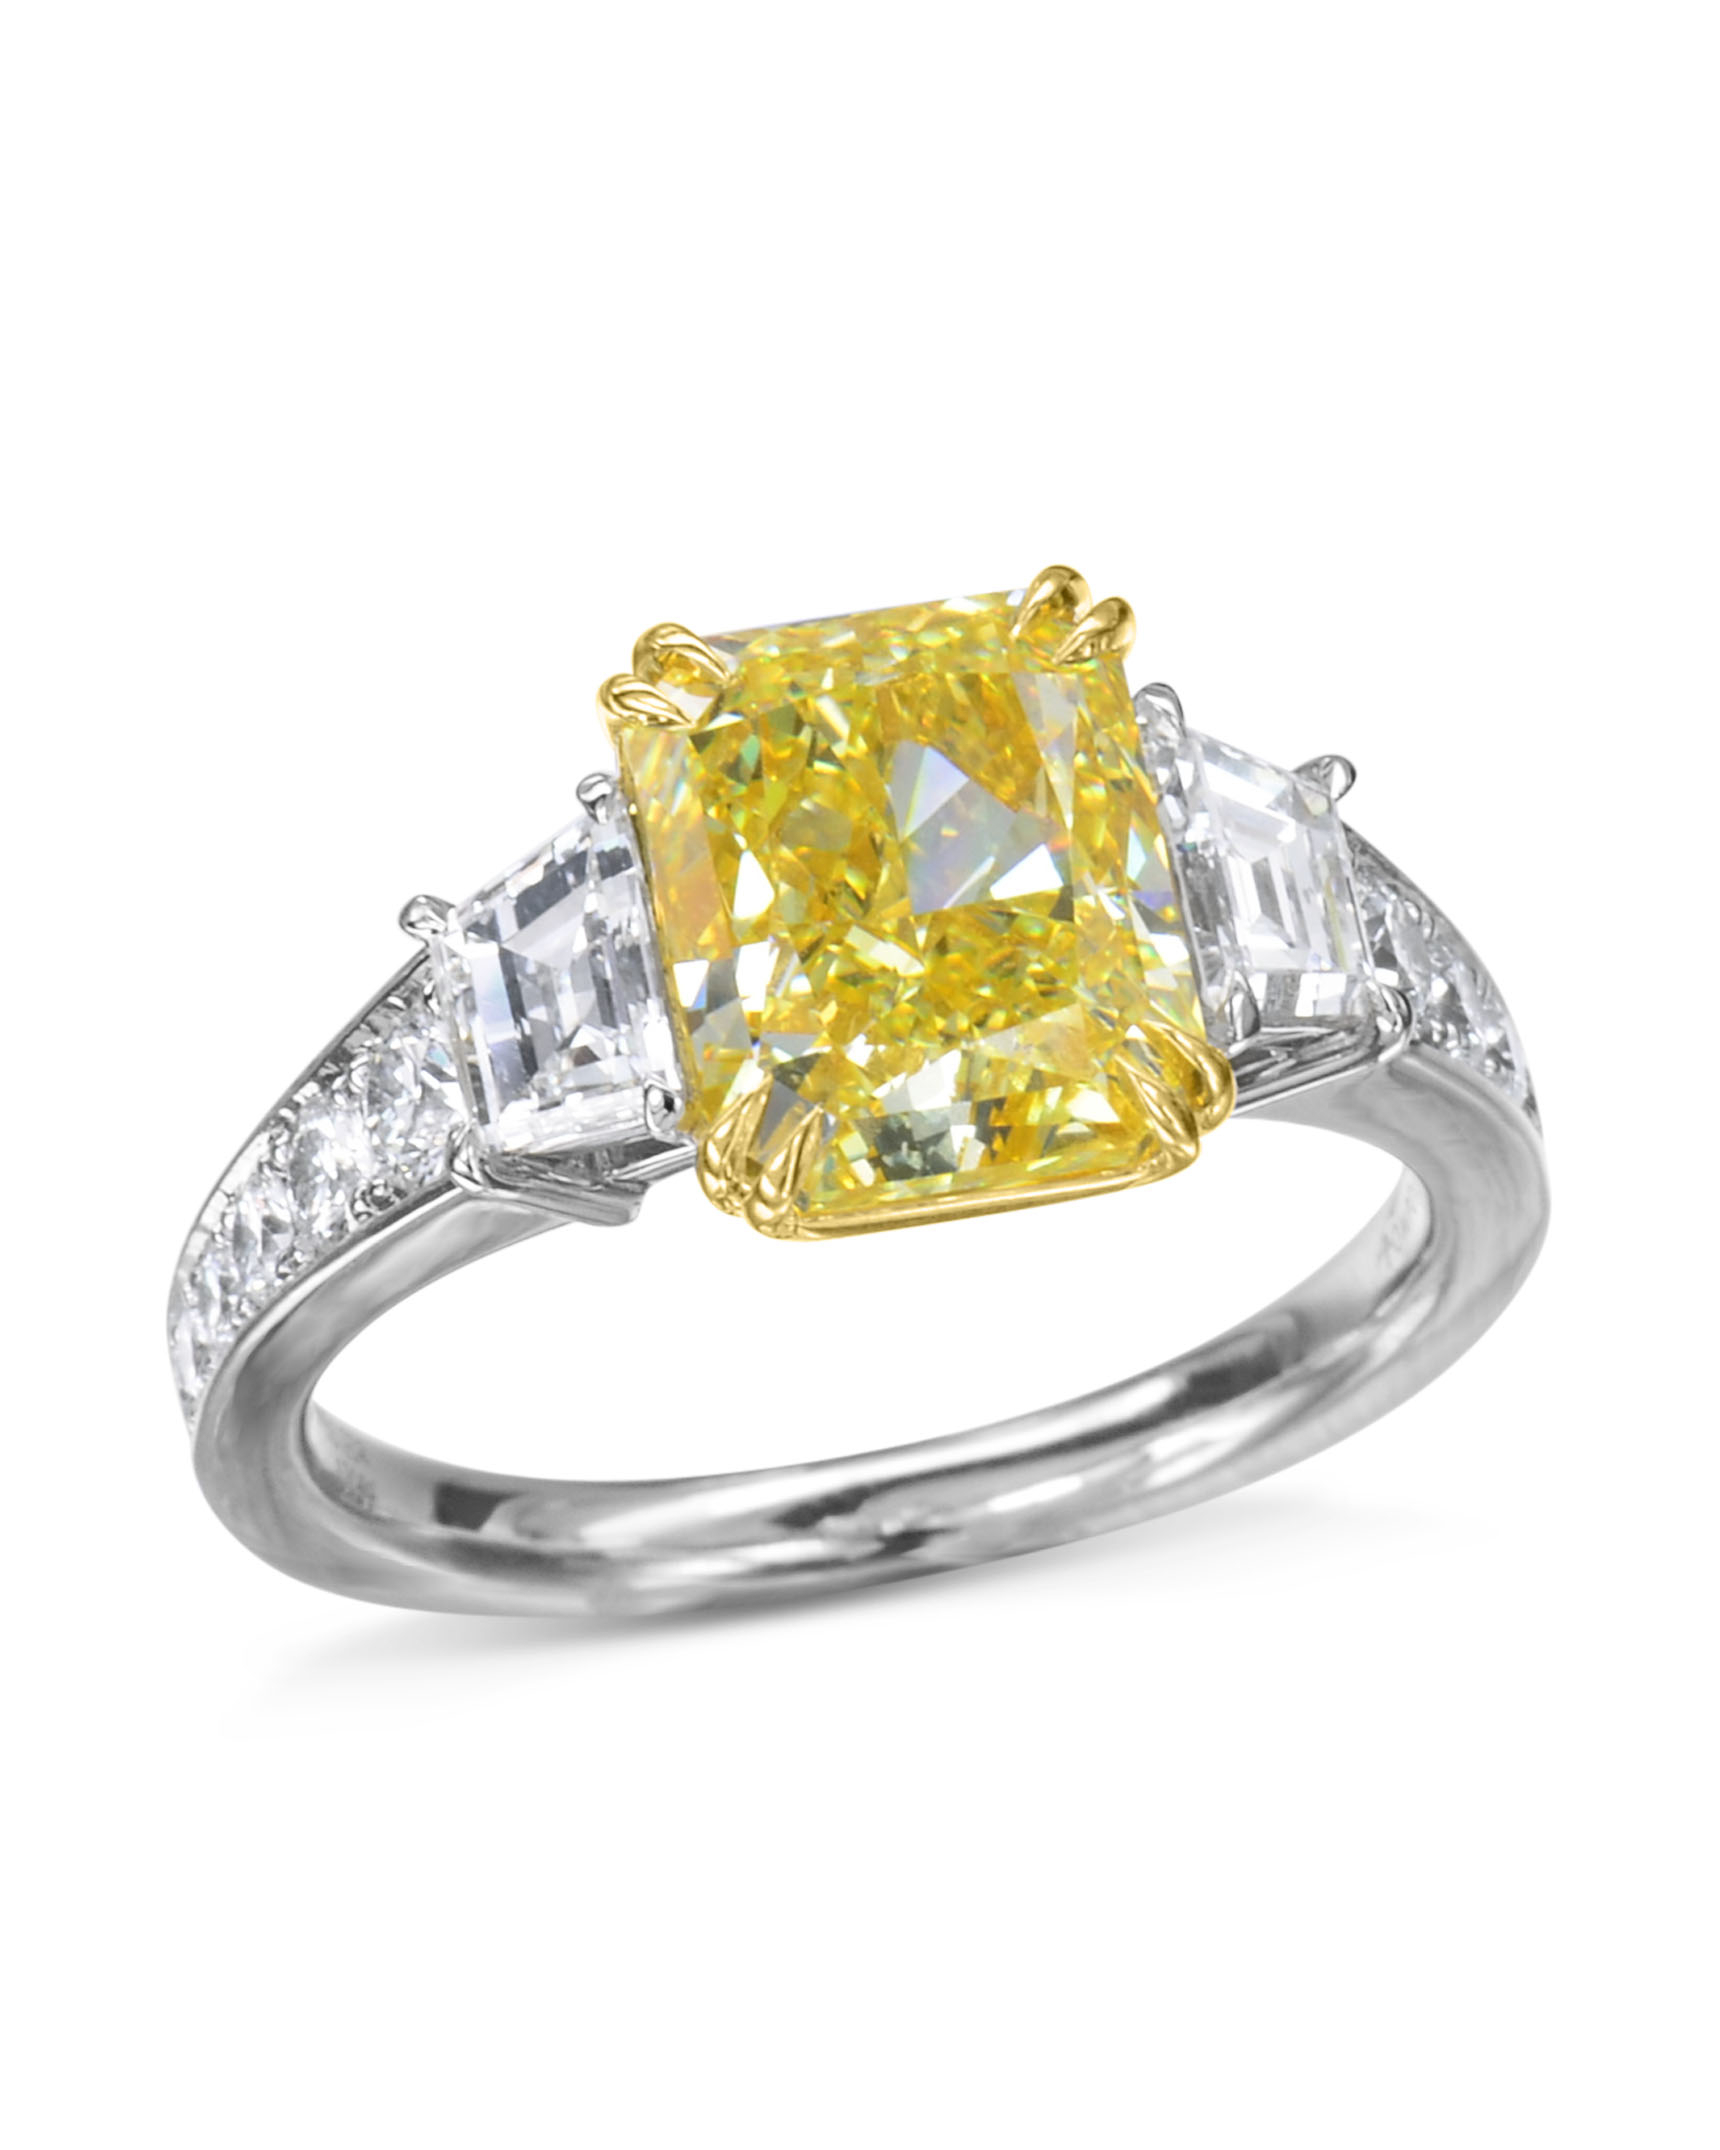 Radiant Cut Yellow Diamond Engagement Ring Throughout Radiant Yellow Diamond Rings (View 4 of 25)